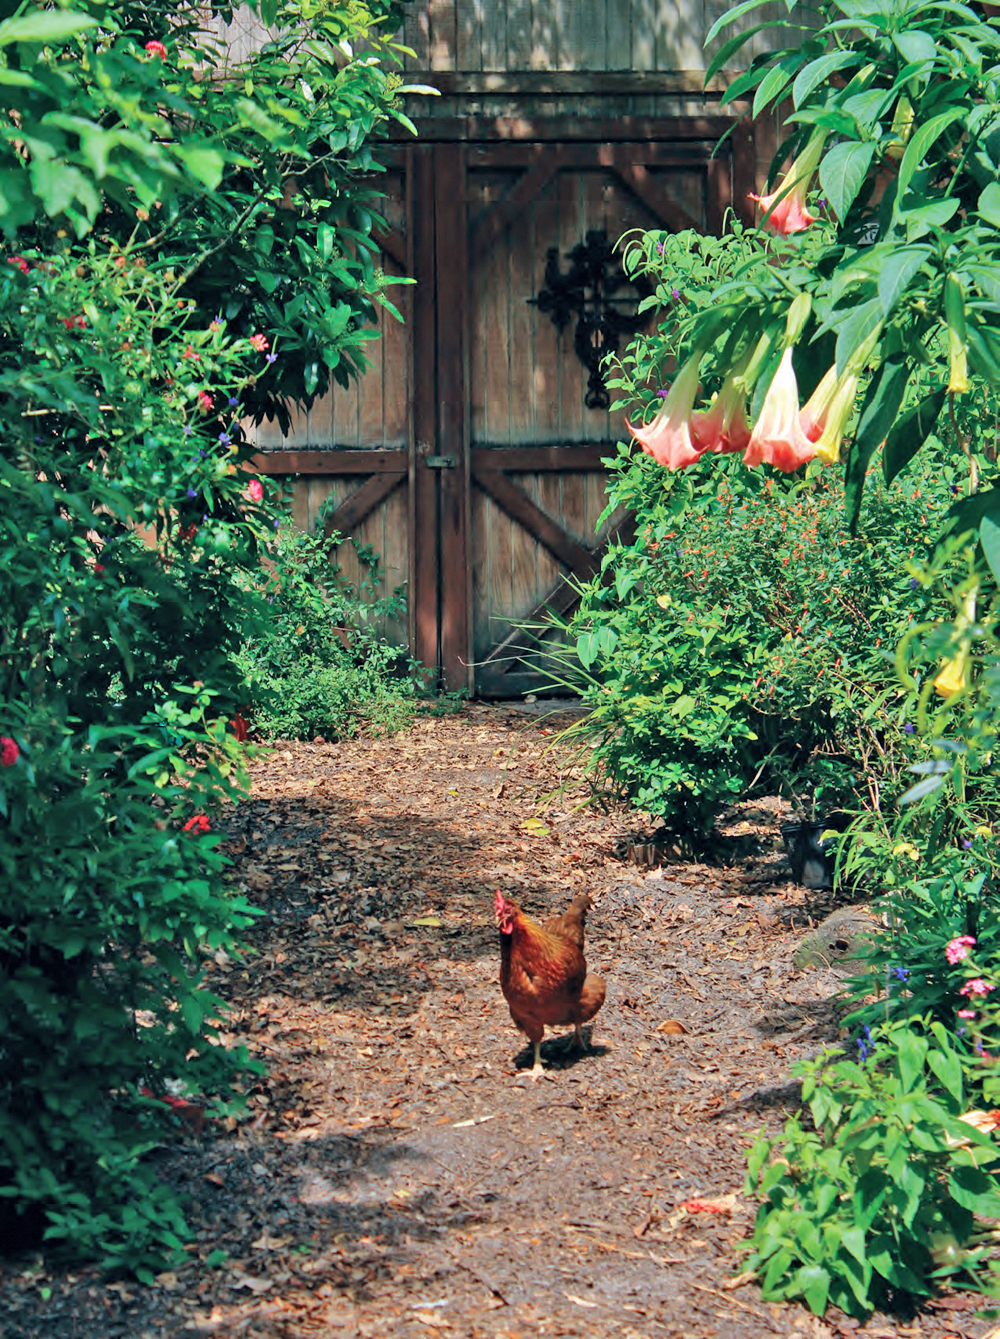 Poultry & Produce—Keeping Your Poultry In Your Garden